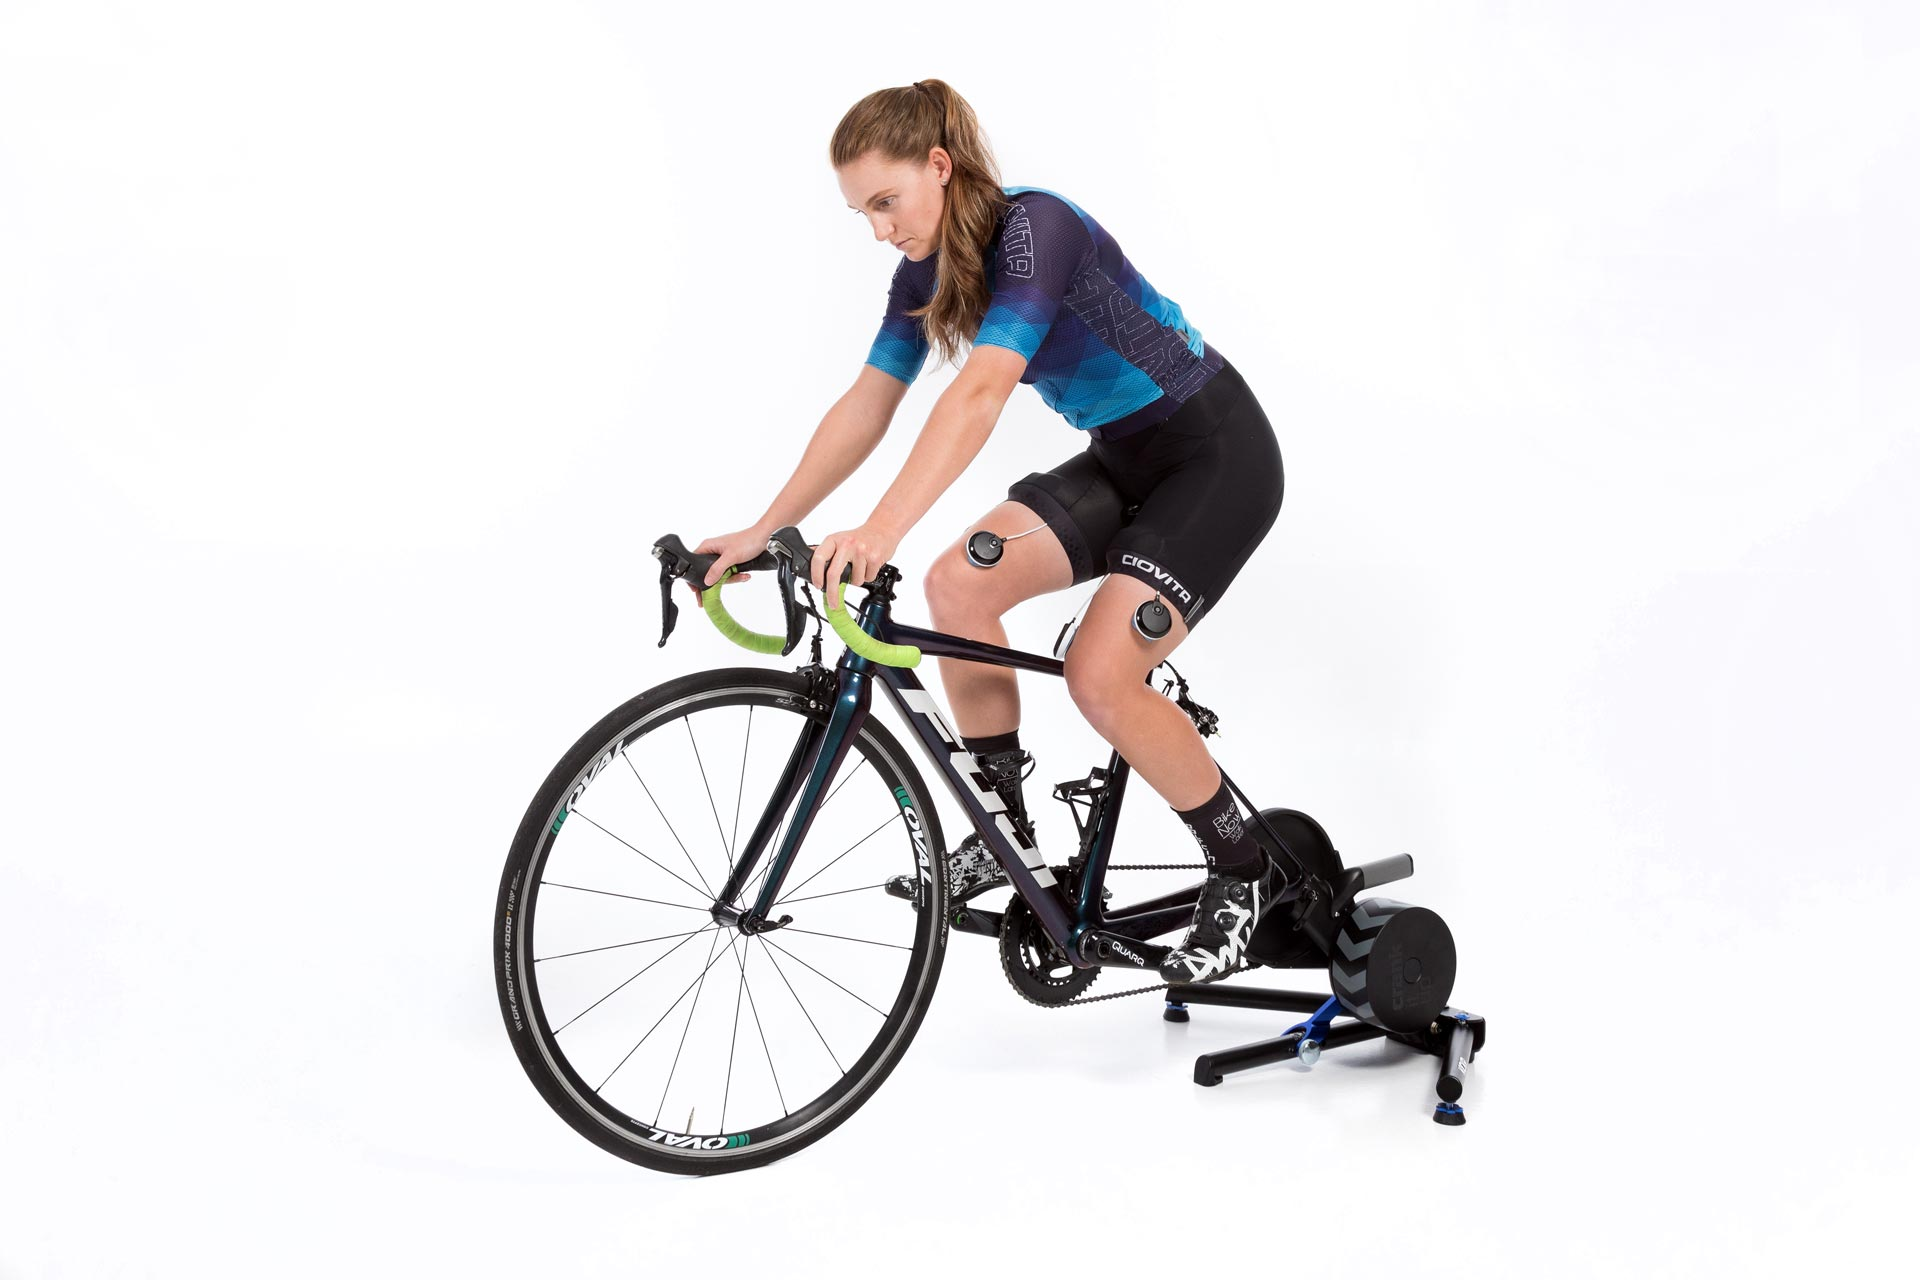 EMS_Cycling_female1